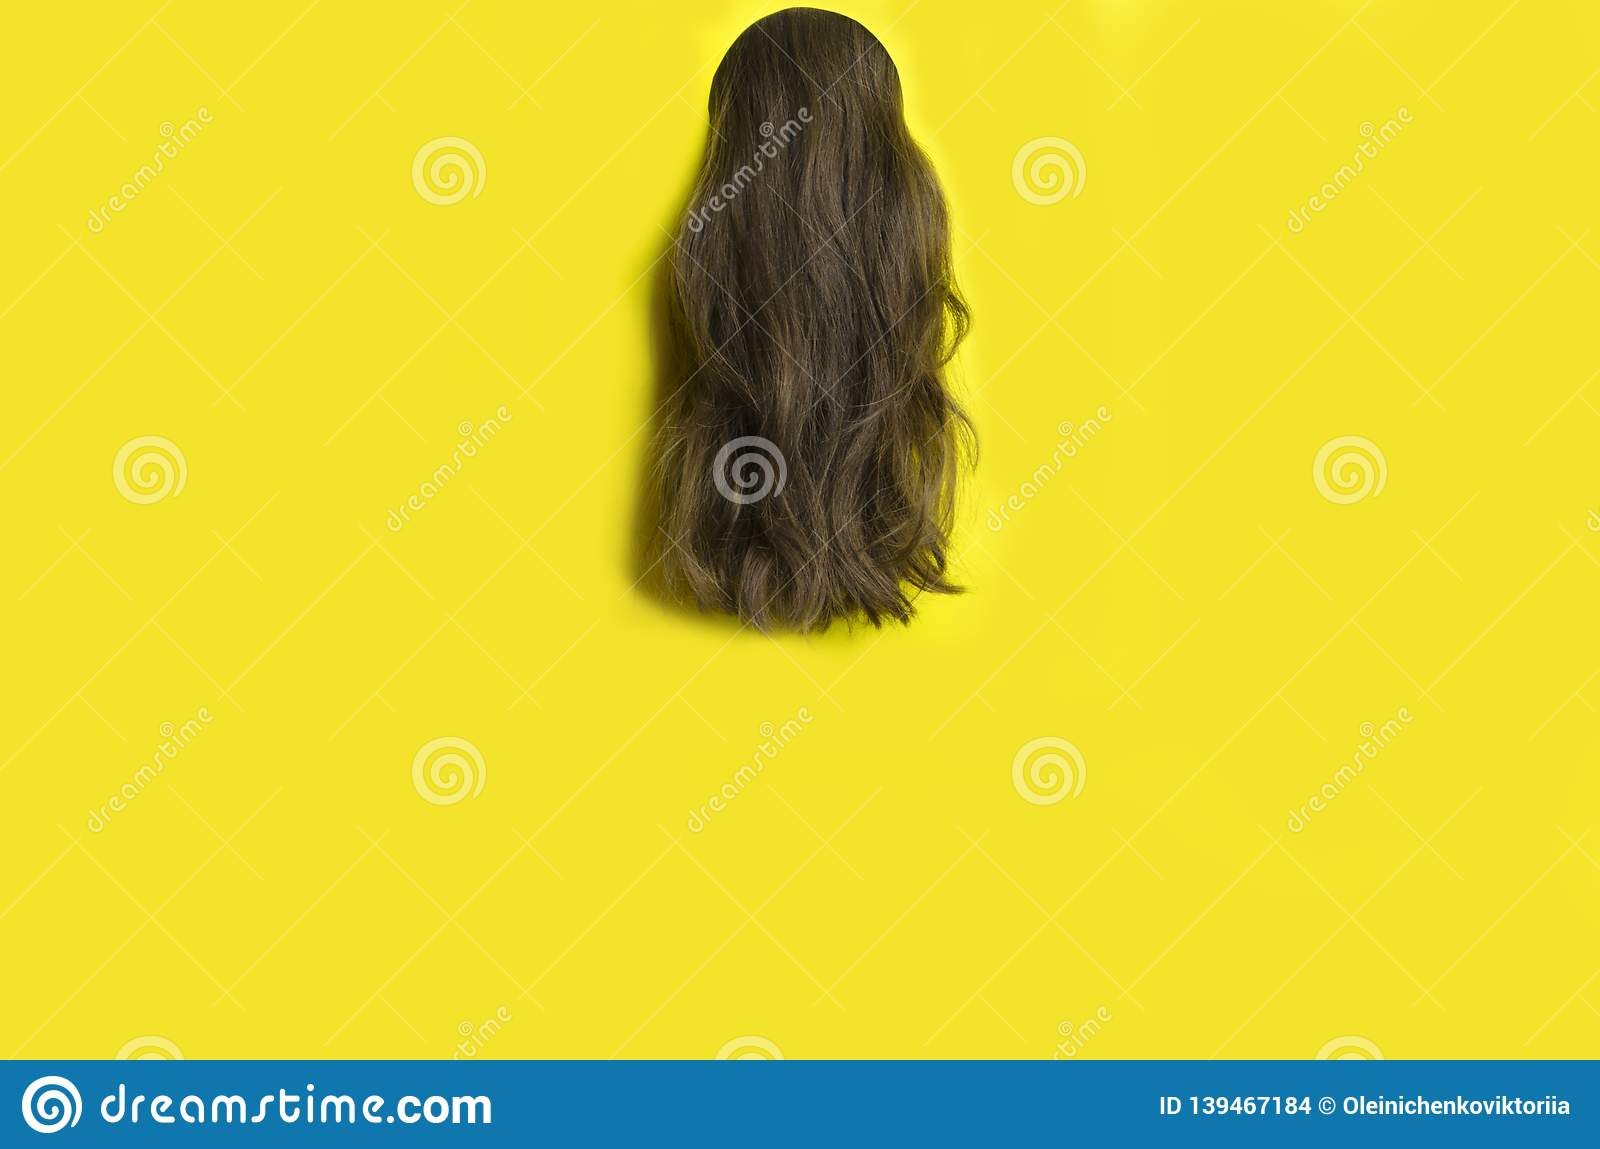 Template for hairdresser.Long wavy hair against yellow background,copy space.